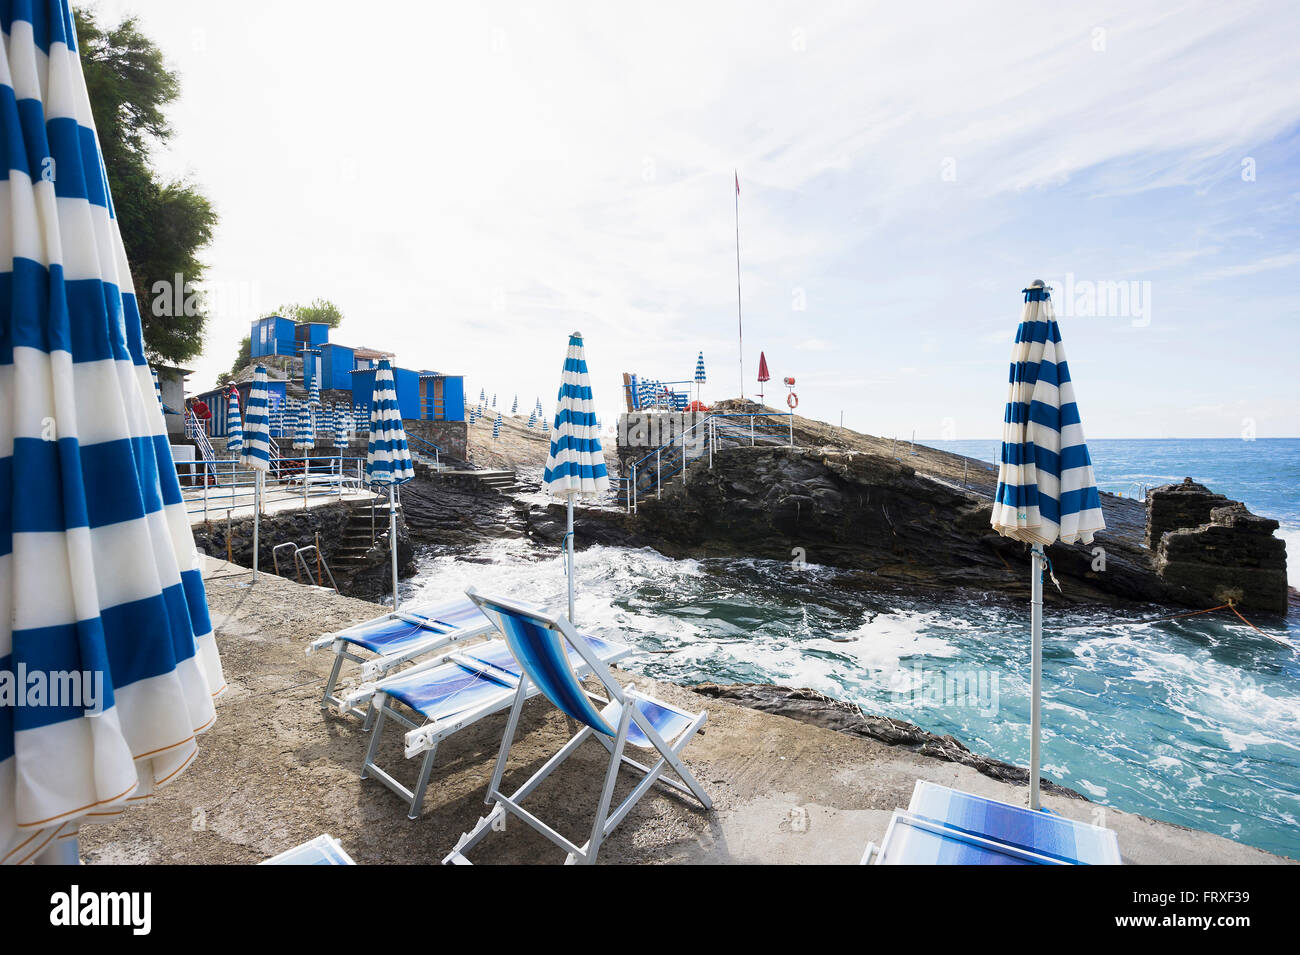 Bagni Scogliera Nervi Open Air Pool Stock Photos And Open Air Pool Stock Images